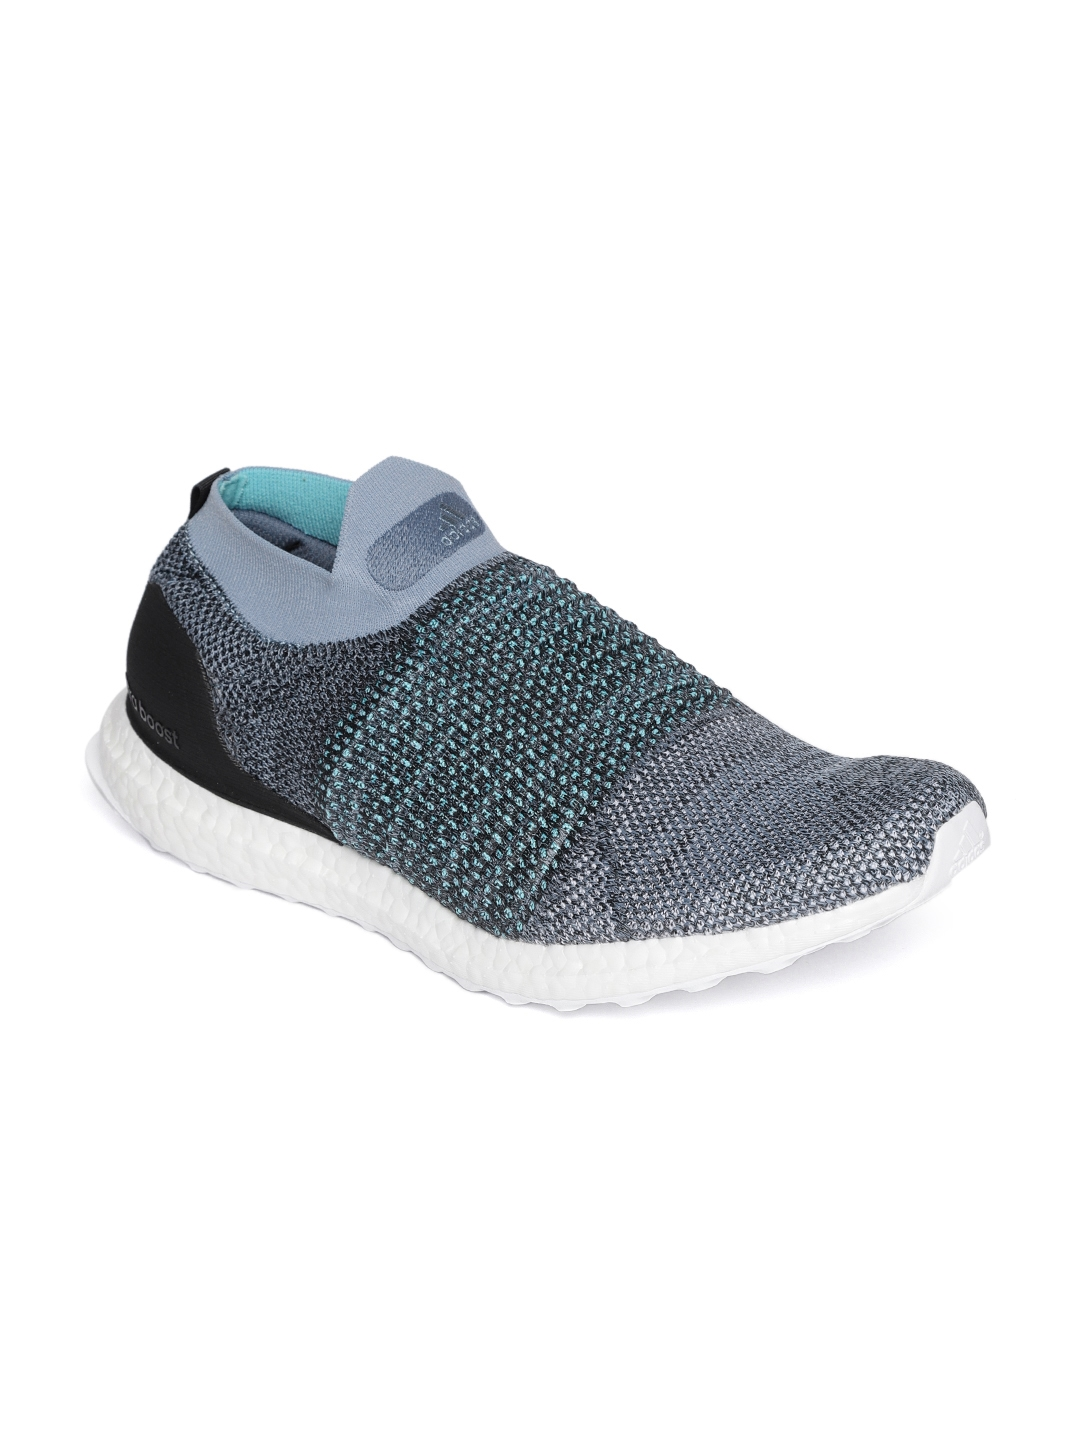 c0d5eb062a7 Buy ADIDAS Men Blue   Grey Ultraboost Laceless Parley Running Shoes ...